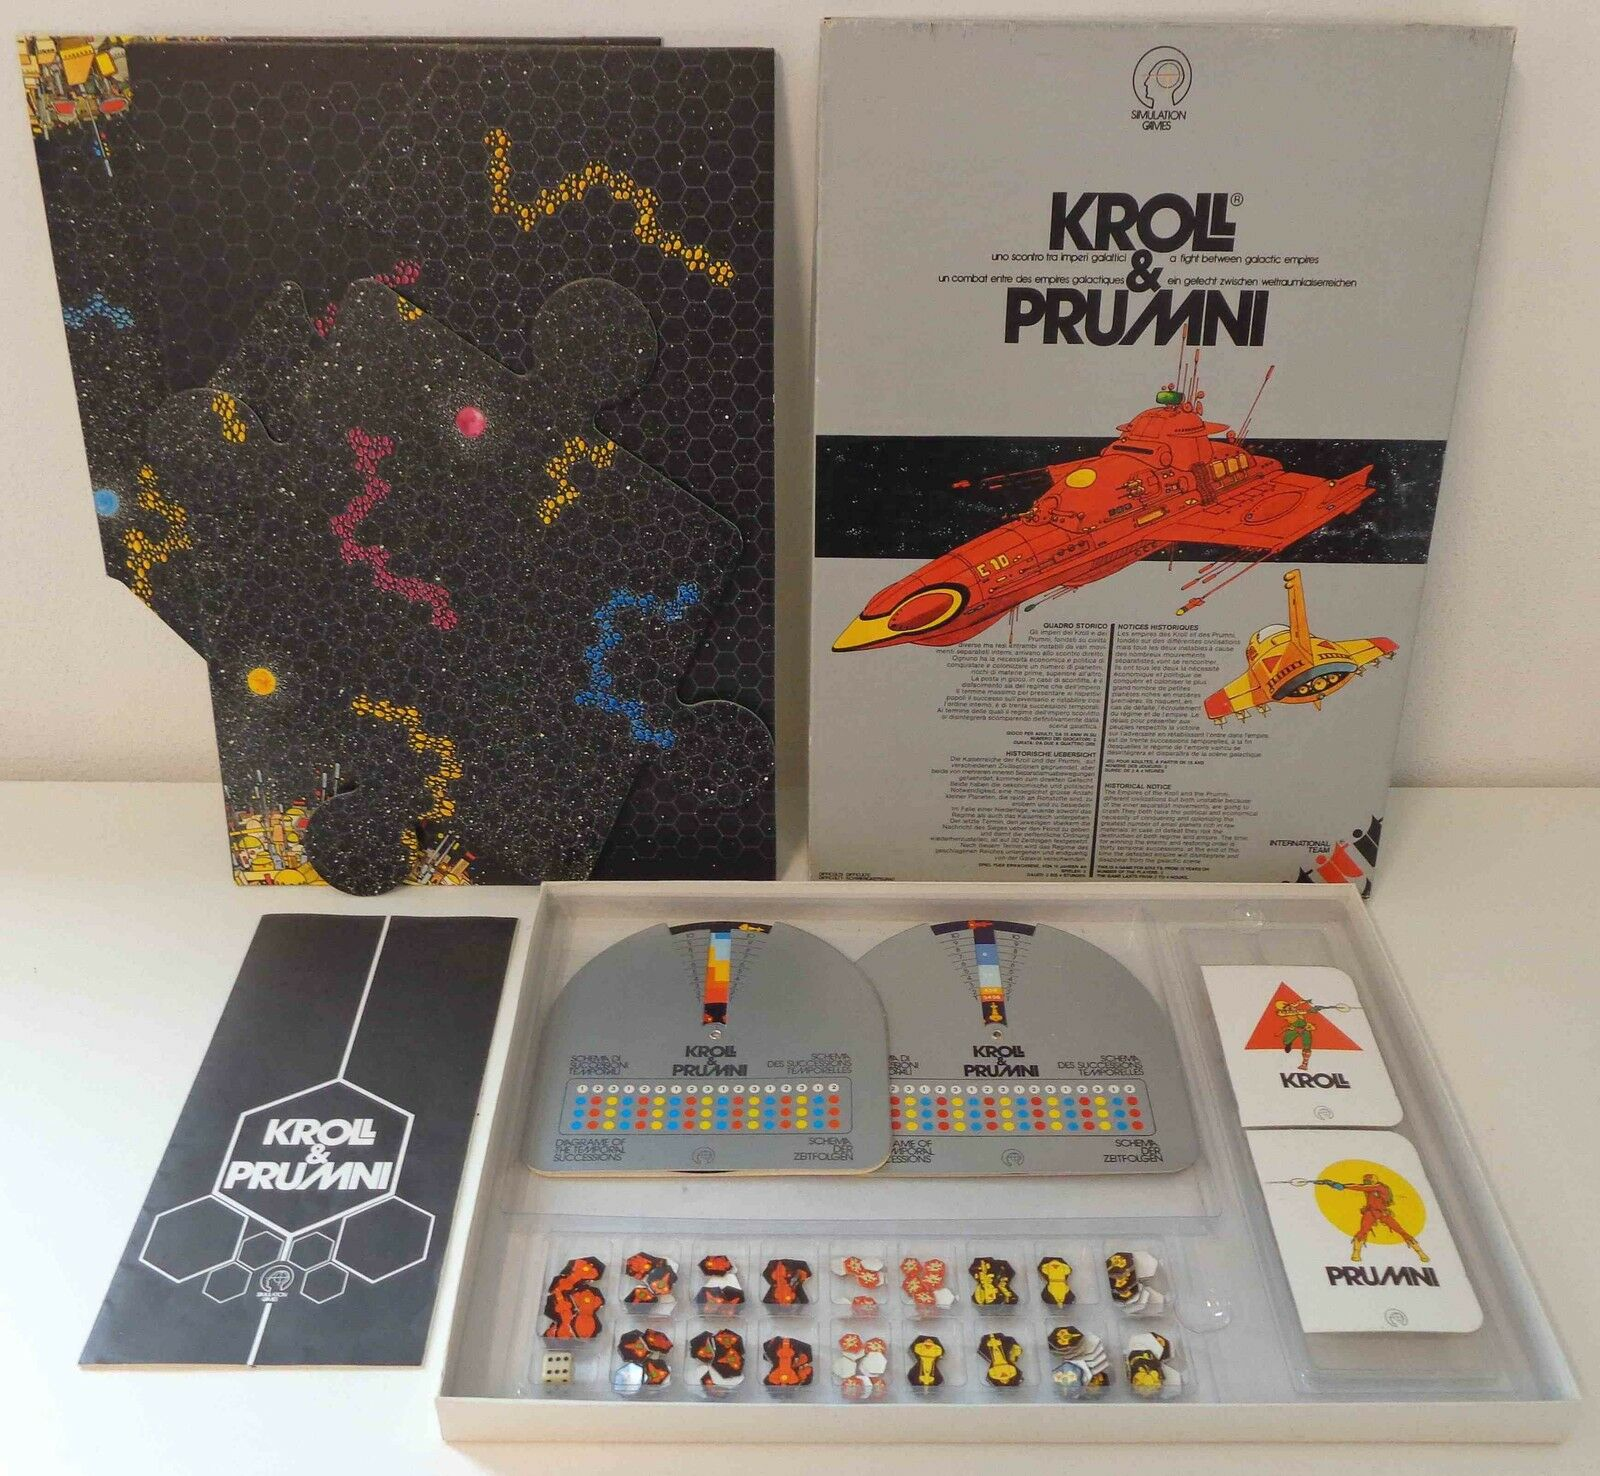 Board game GAME GAMES VINTAGE 1979 Kroll & prumni International Team Italian